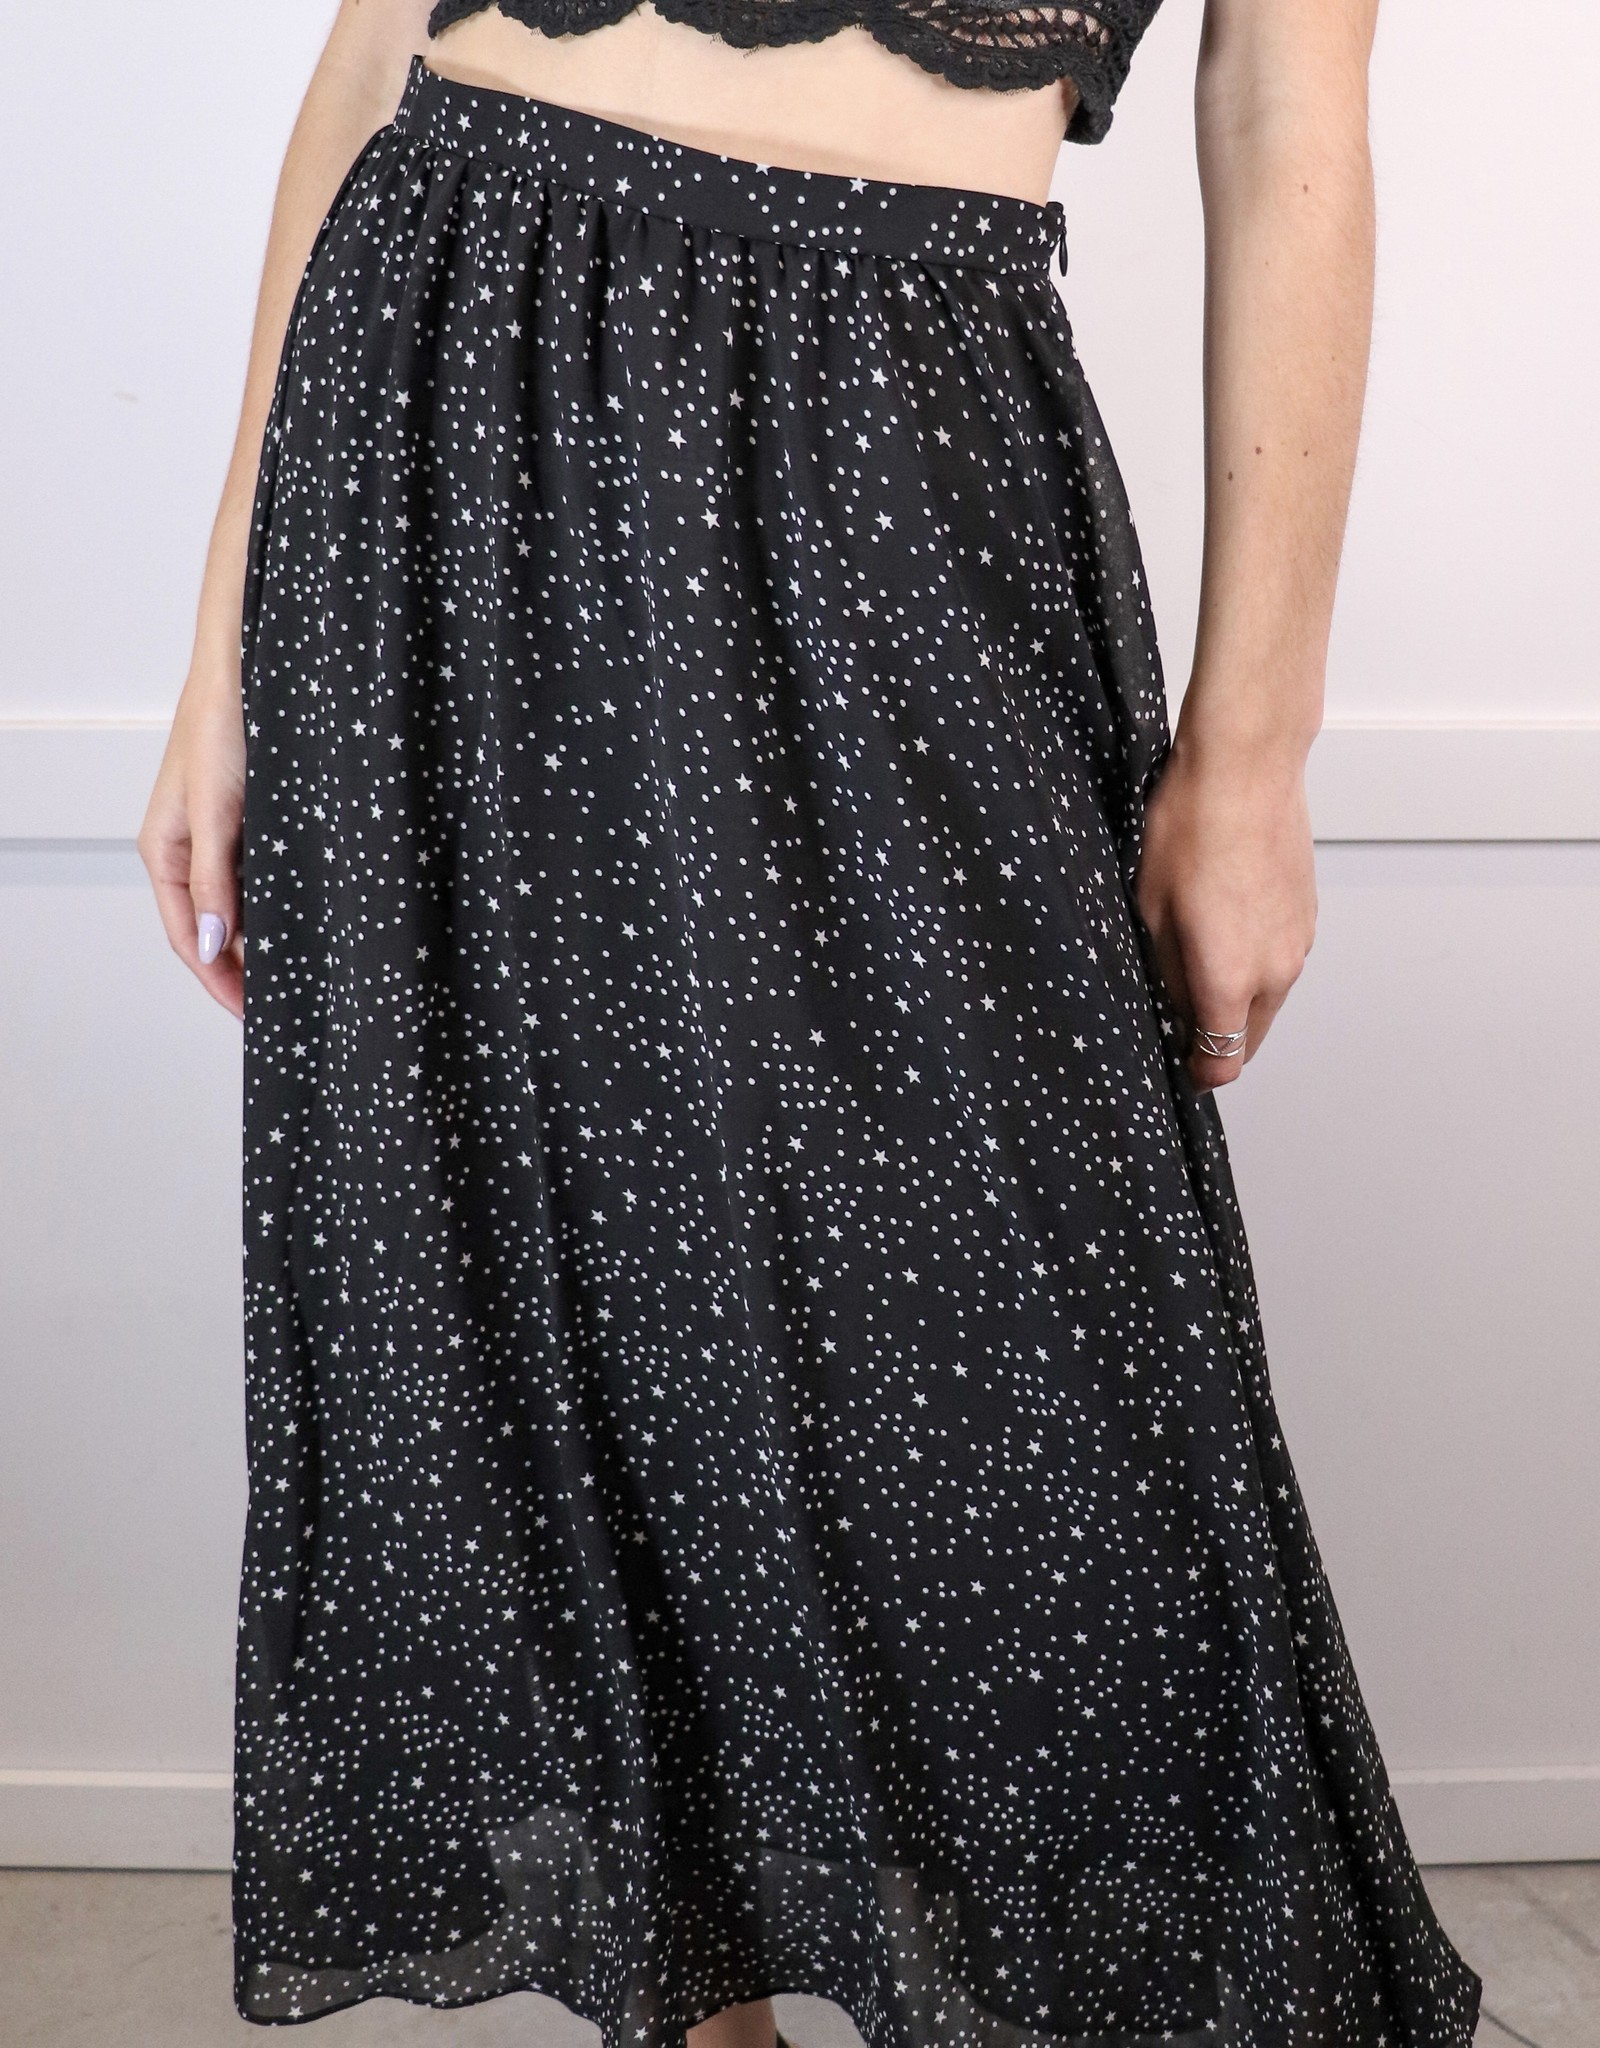 HUSH Star print tea length skirt